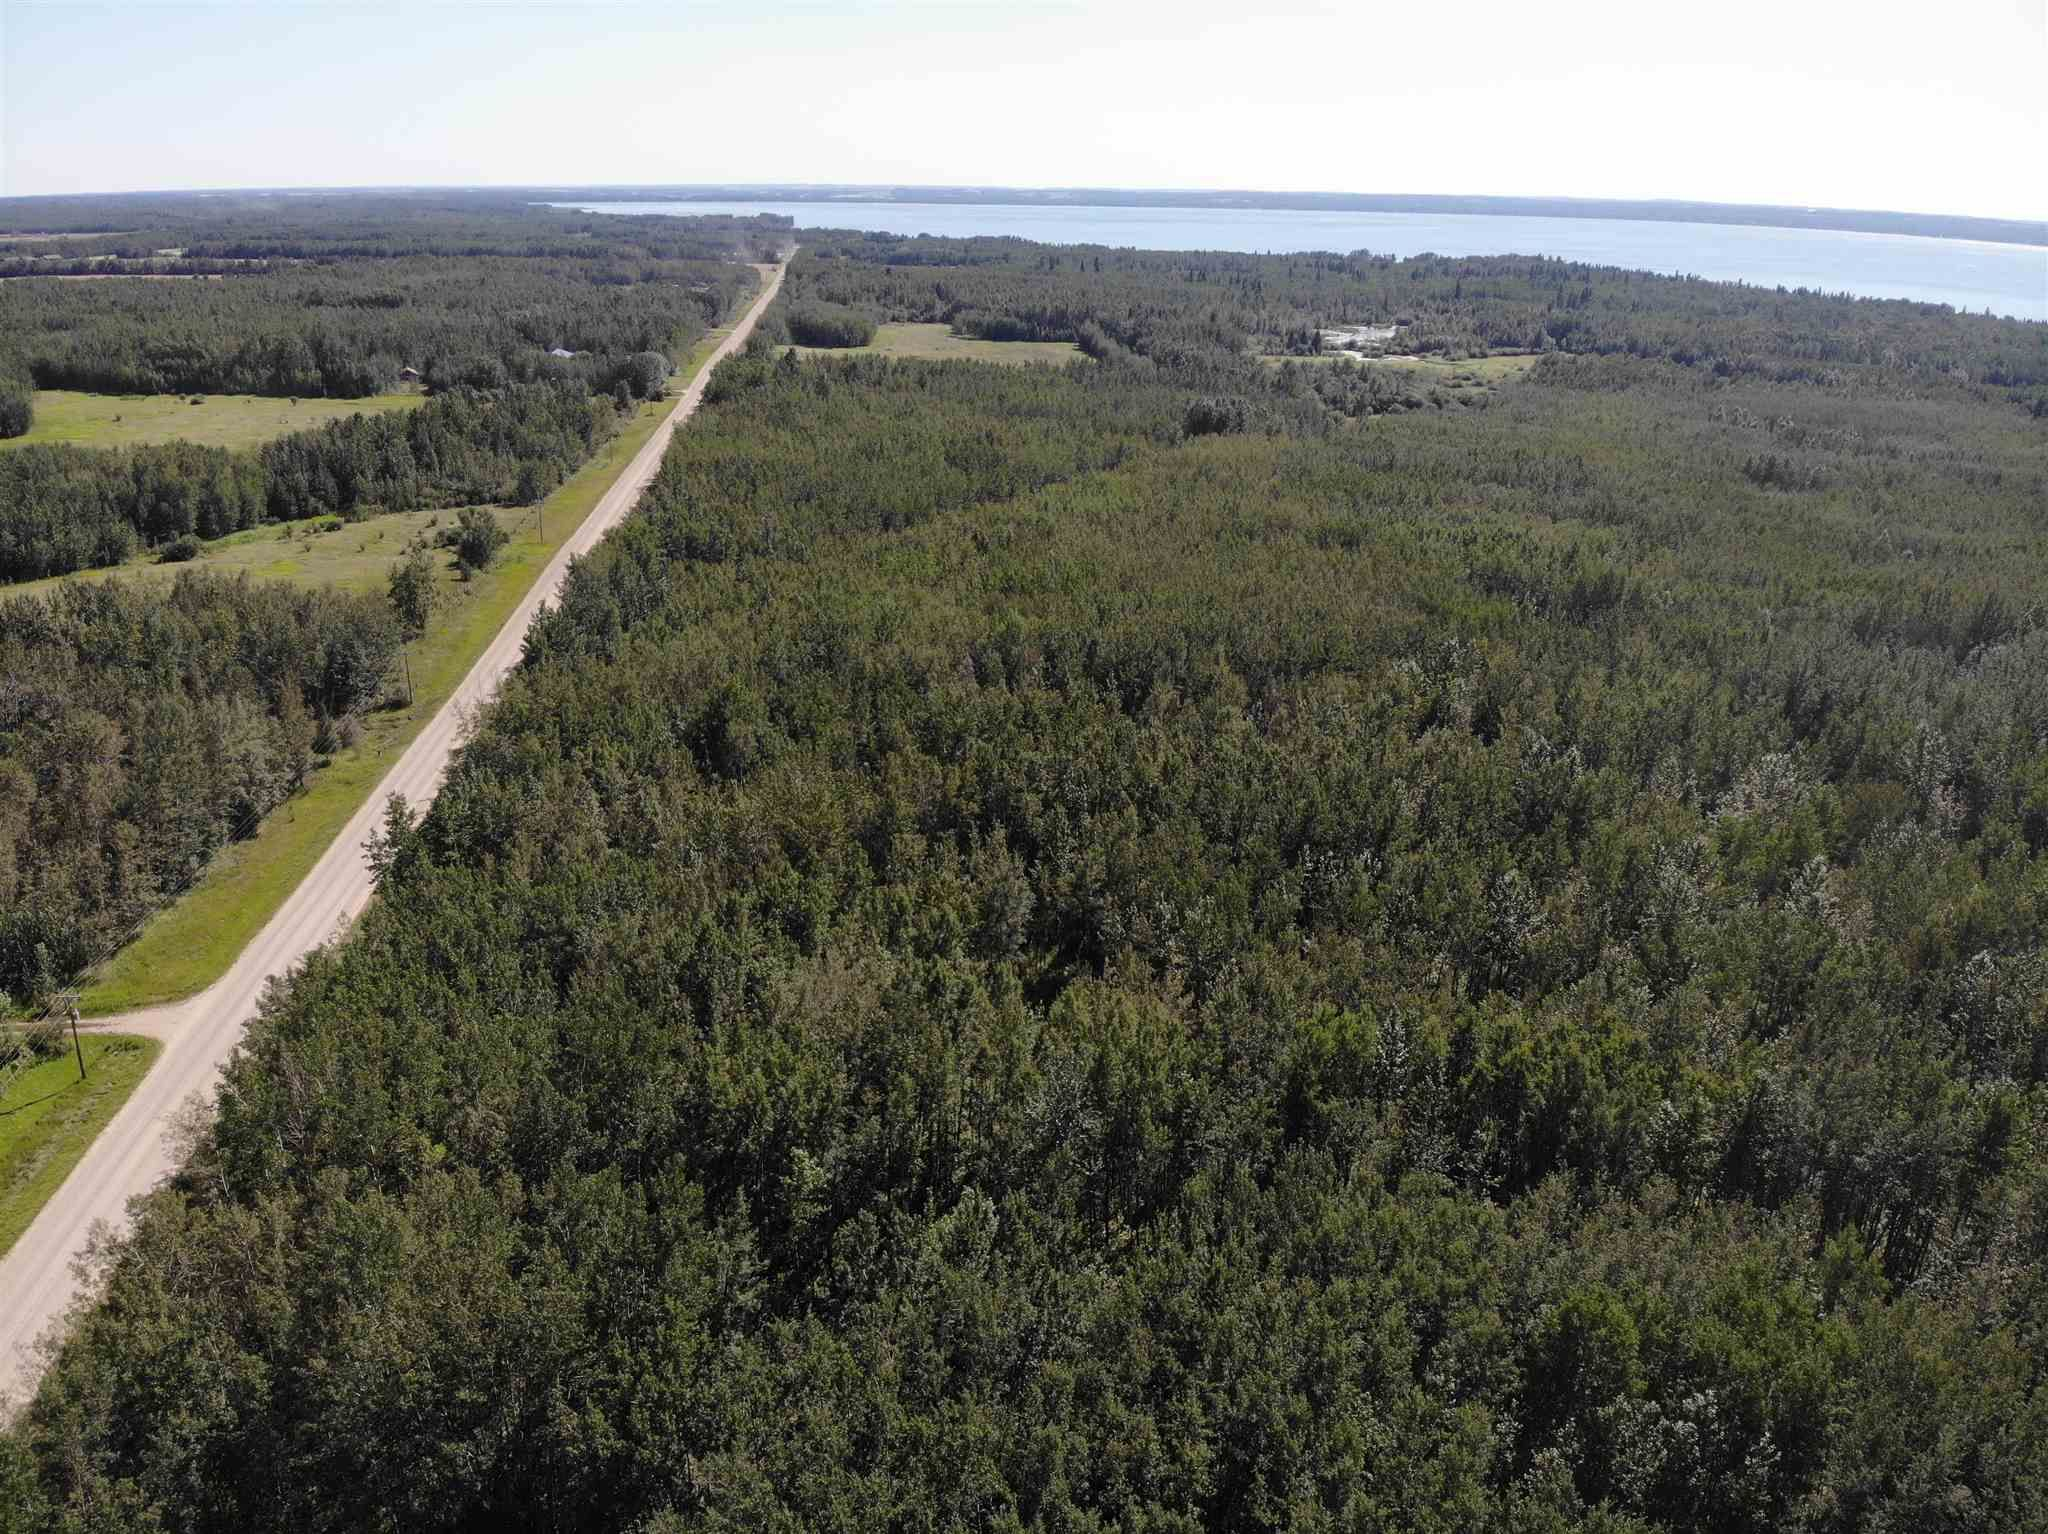 Main Photo: 50 Ave RR 281: Rural Wetaskiwin County Rural Land/Vacant Lot for sale : MLS®# E4191207